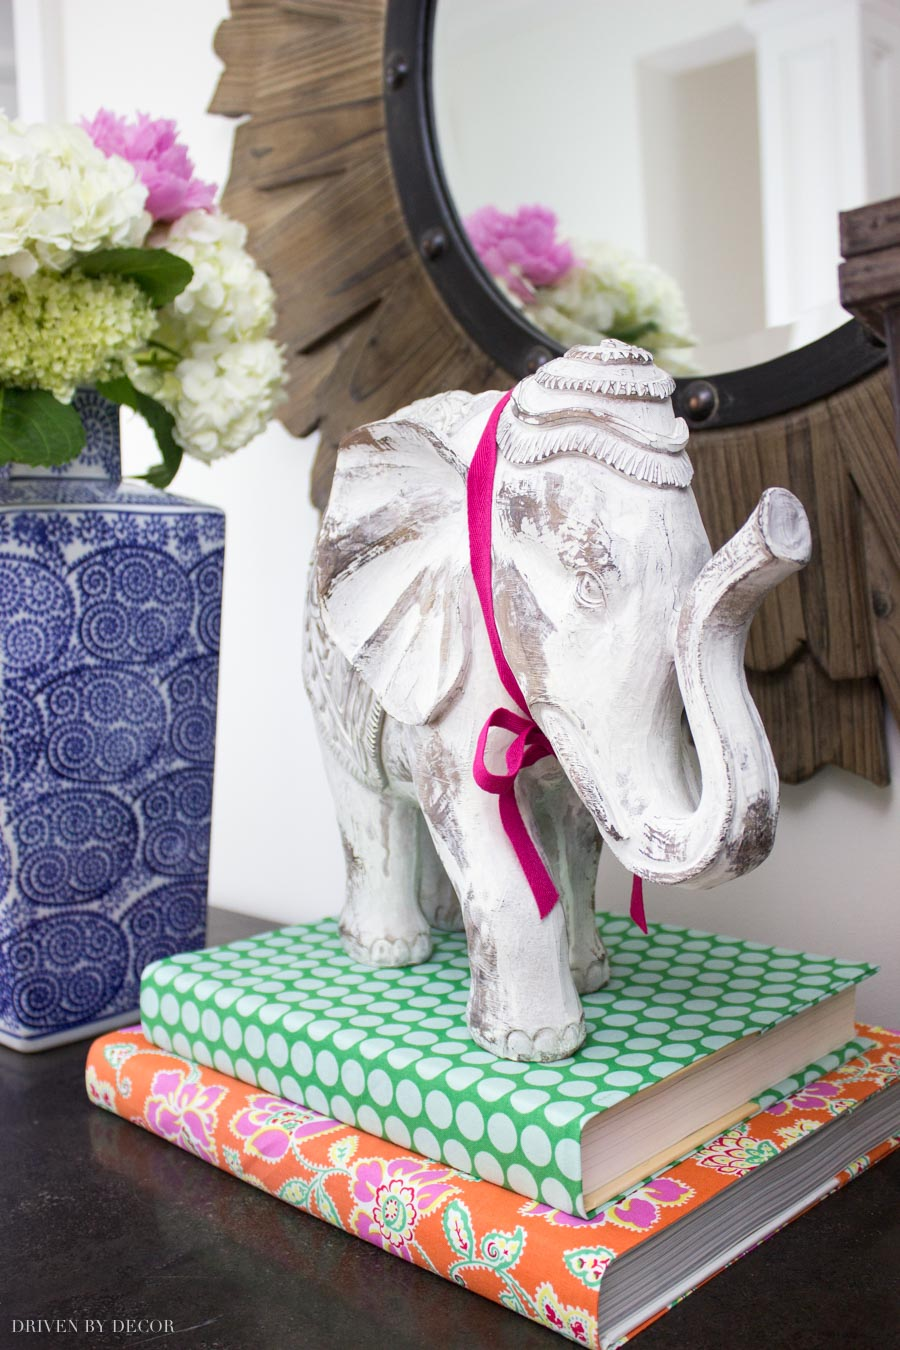 Love the idea of using fabric book covers in decorating!